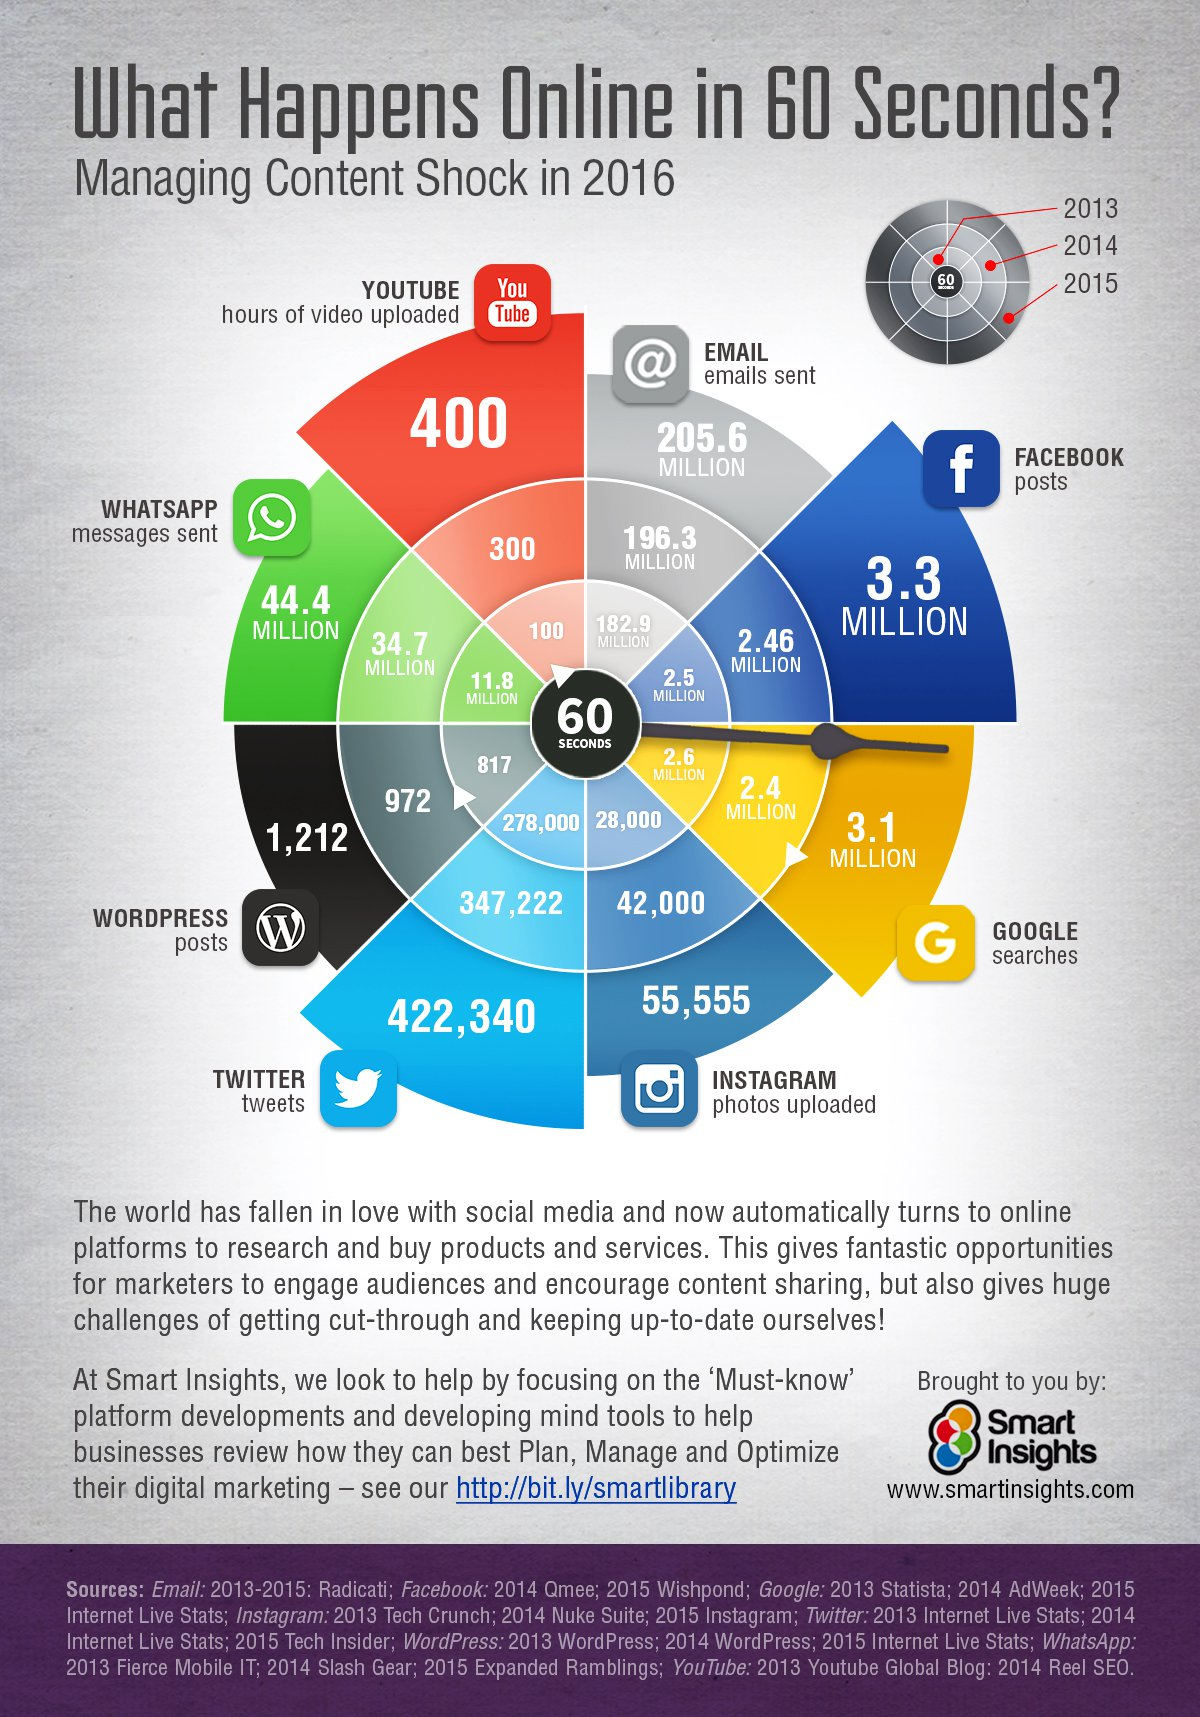 What-happens-online-in-60-seconds-one-minute